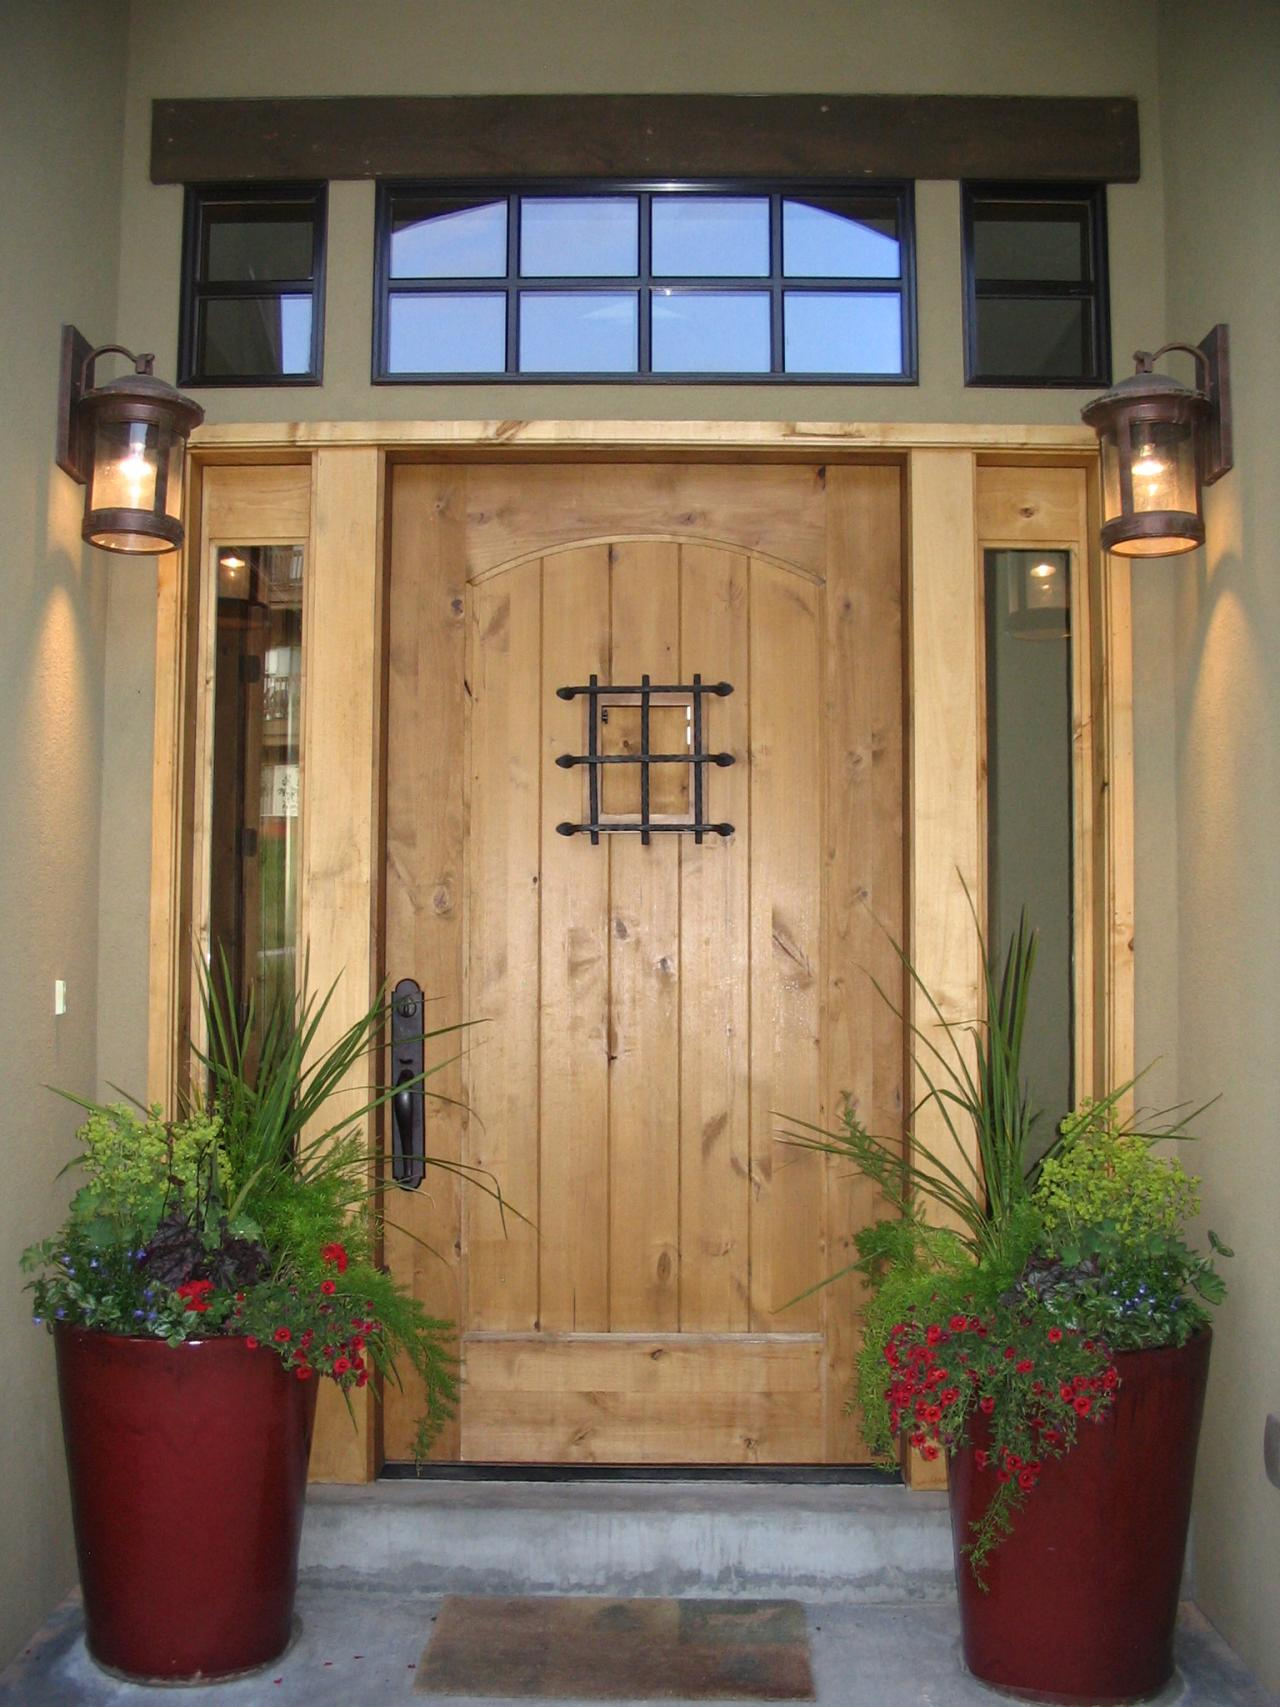 Image of: Exterior Porch Lights Placed